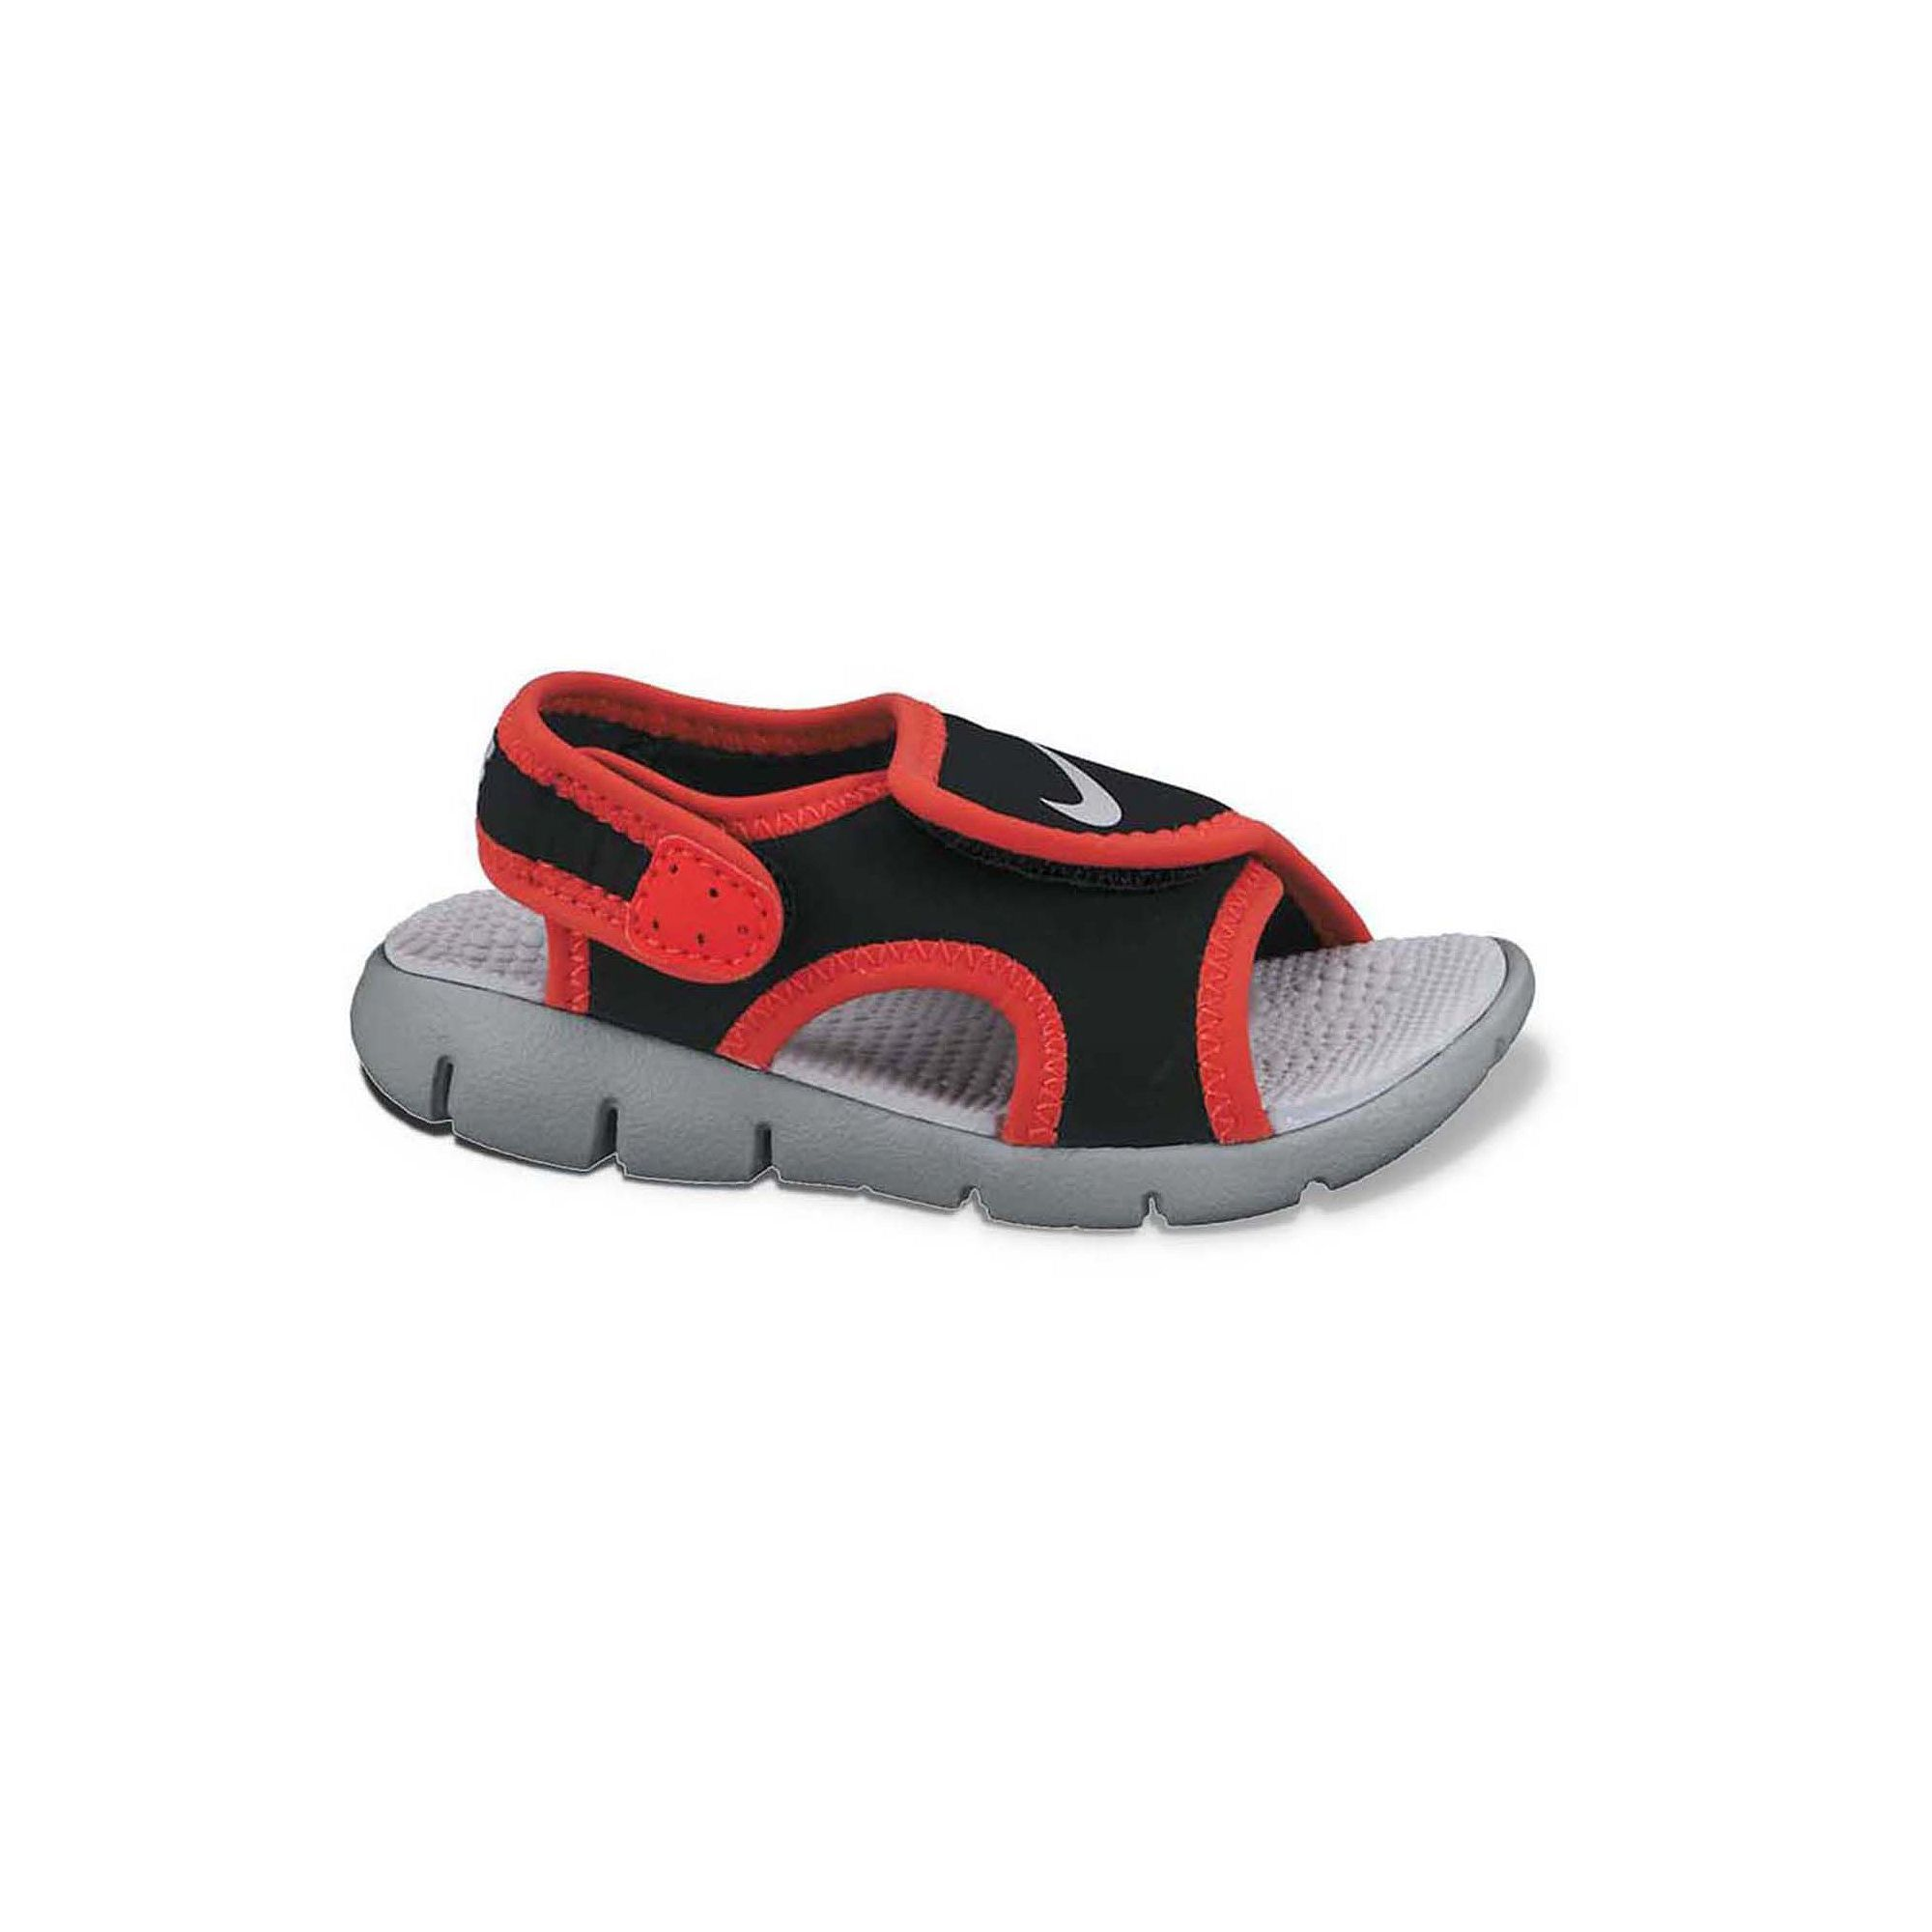 brand new 68256 3f9a5 Nike Sunray Adjust 4 Toddler Sandals, Boys, Size 9 T, Oxford